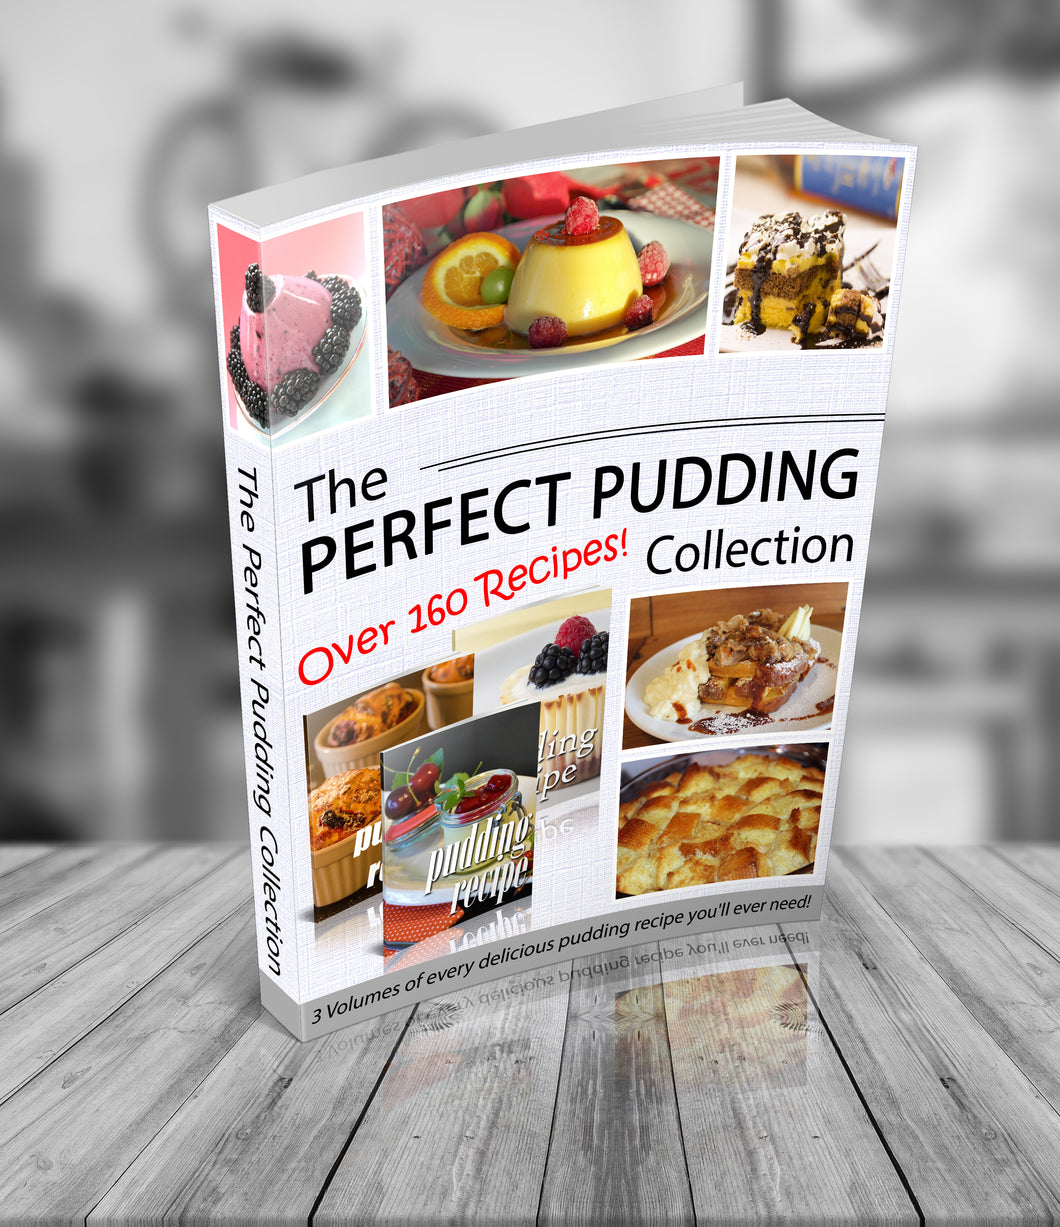 The Perfect Pudding Collection - 3 Volume eBook - Over 160 Recipes!